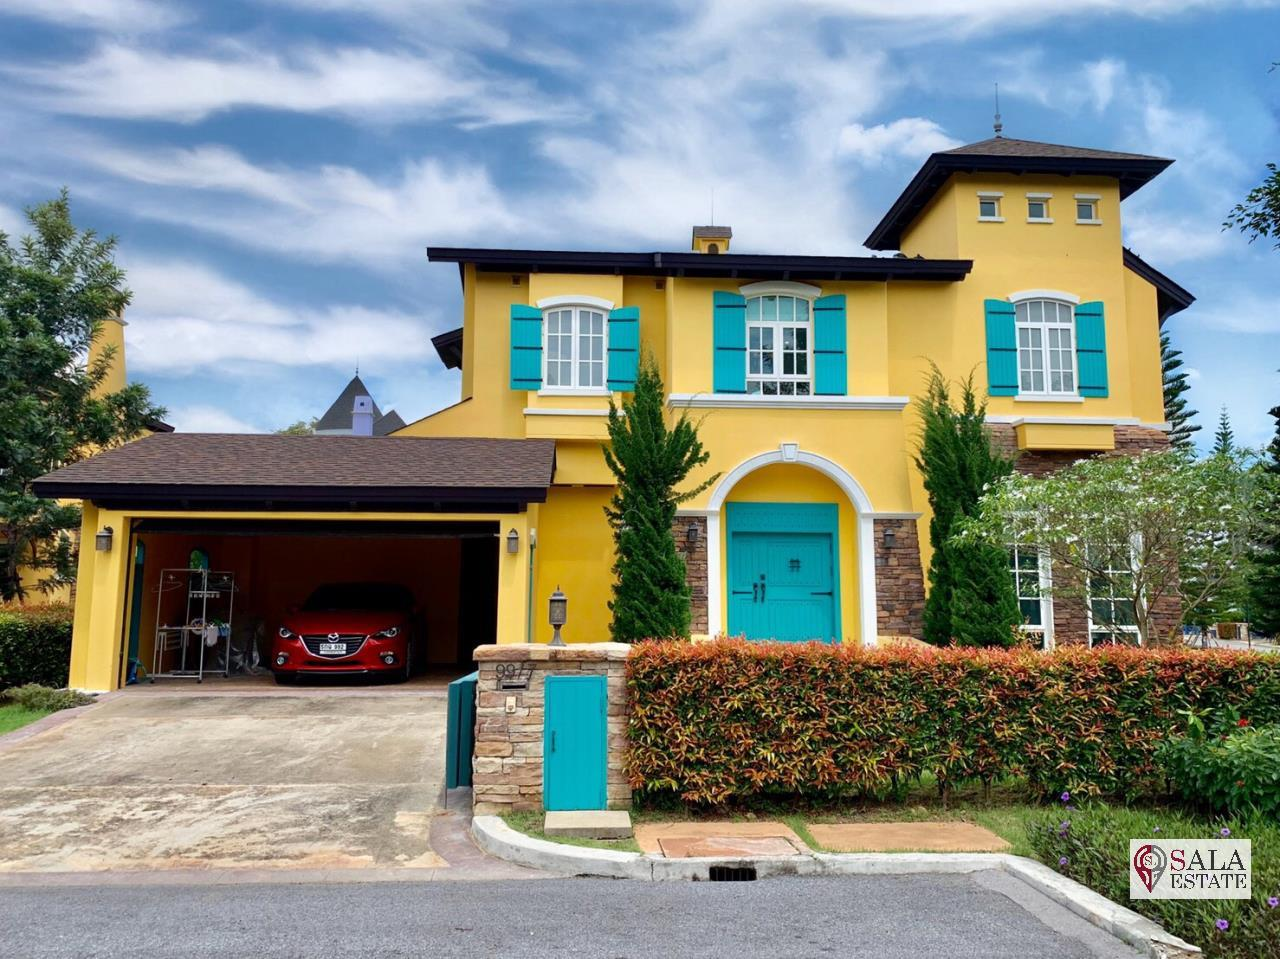 SALA ESTATE Agency's (FOR SALE ONLY 18 MB) PRIVATE LUXURY HOUSE IN KHAO YAI - MAGNOLIAS FRENCH COUNTRY KHAO YAI 1